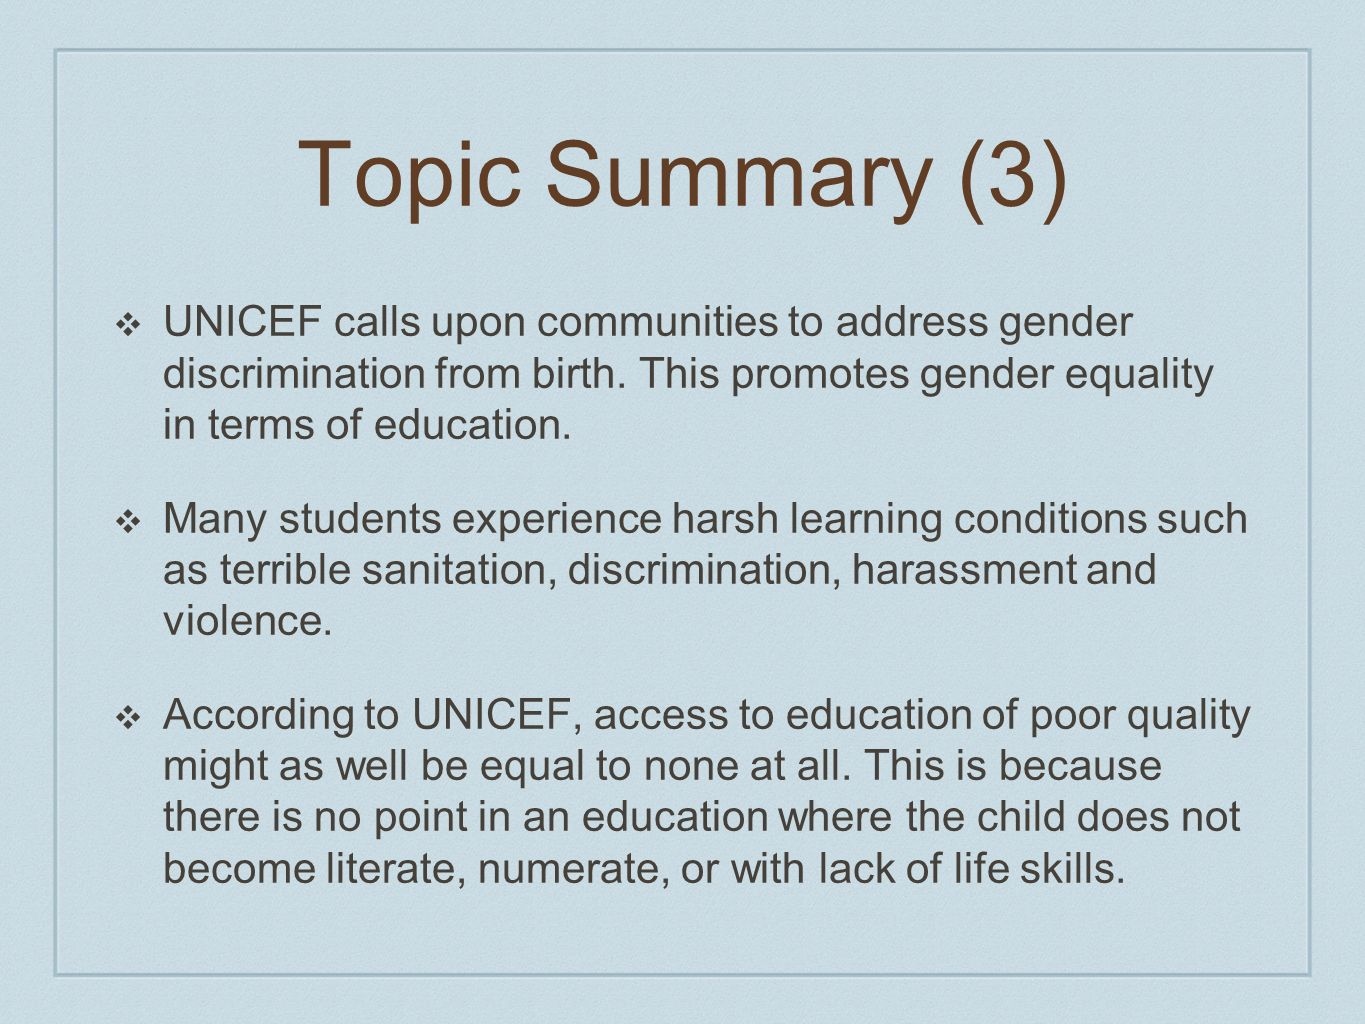 Topic Summary (3) UNICEF calls upon communities to address gender discrimination from birth. This promotes gender equality in terms of education.